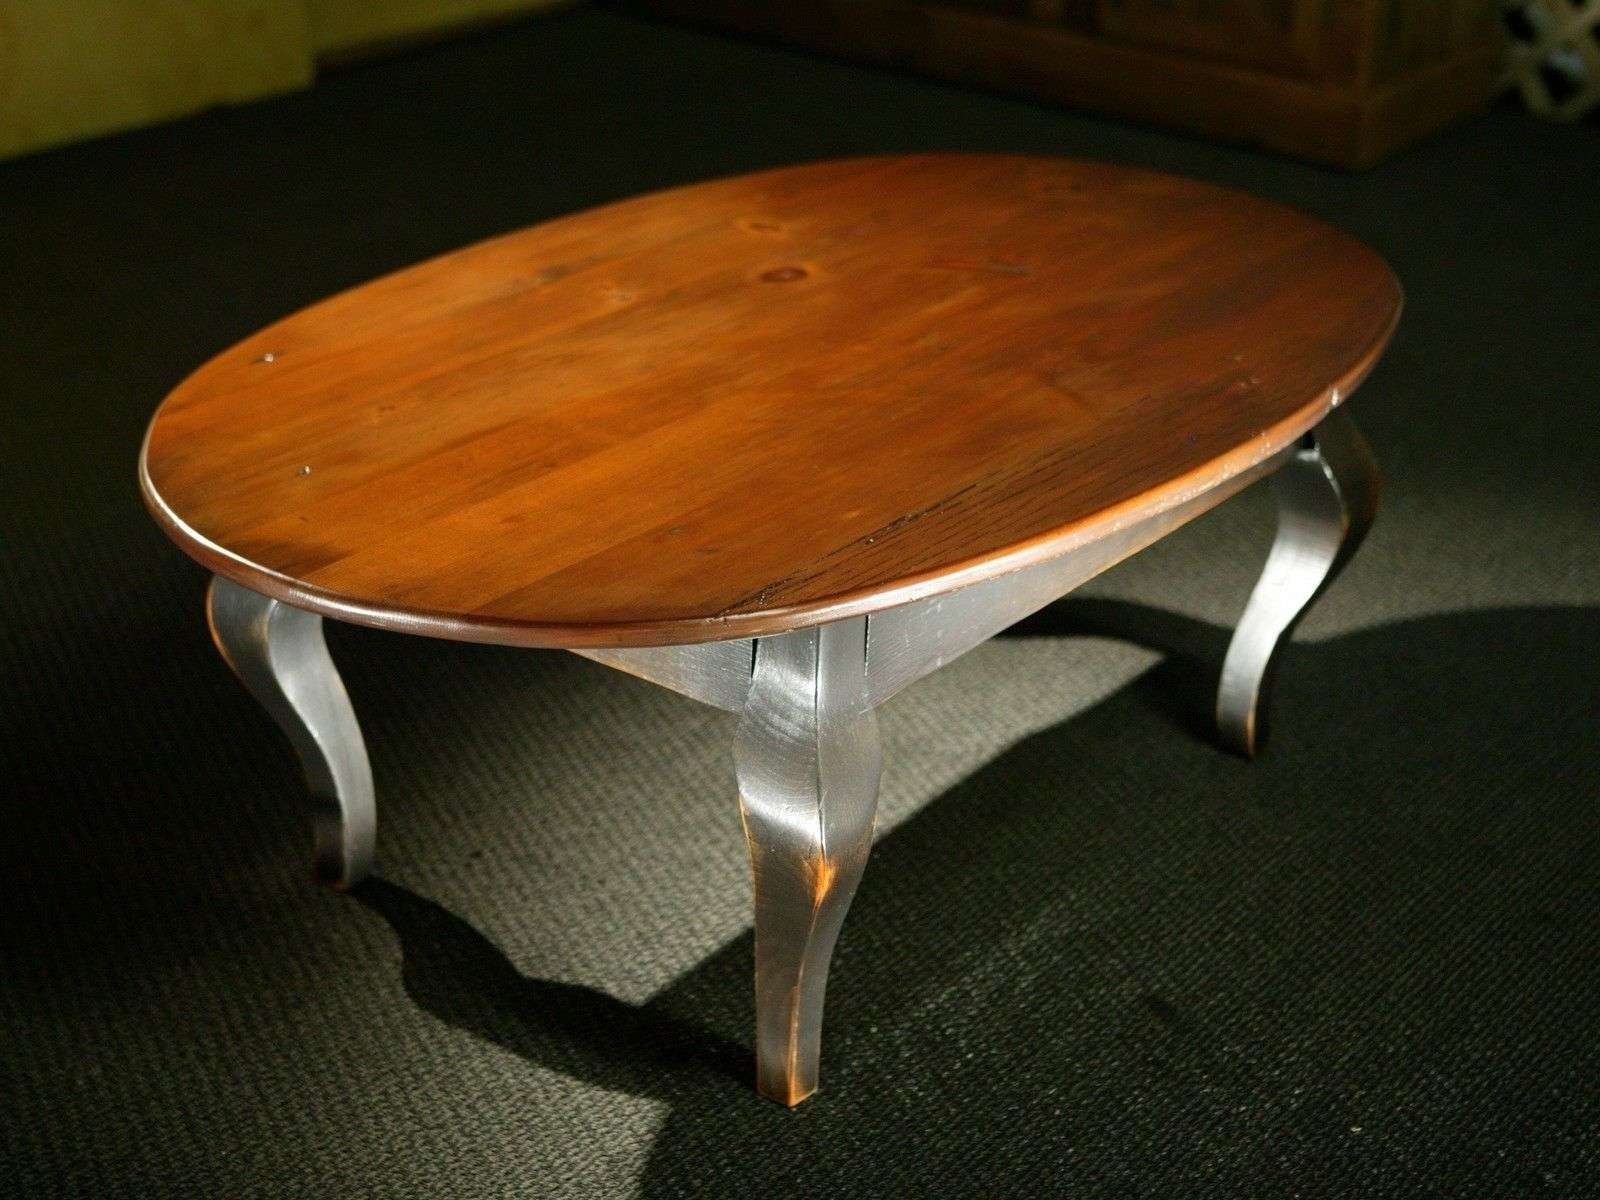 Hand Crafted Oval Wood Coffee Table With Black French Legs Inside Popular Oval Wood Coffee Tables (View 11 of 20)